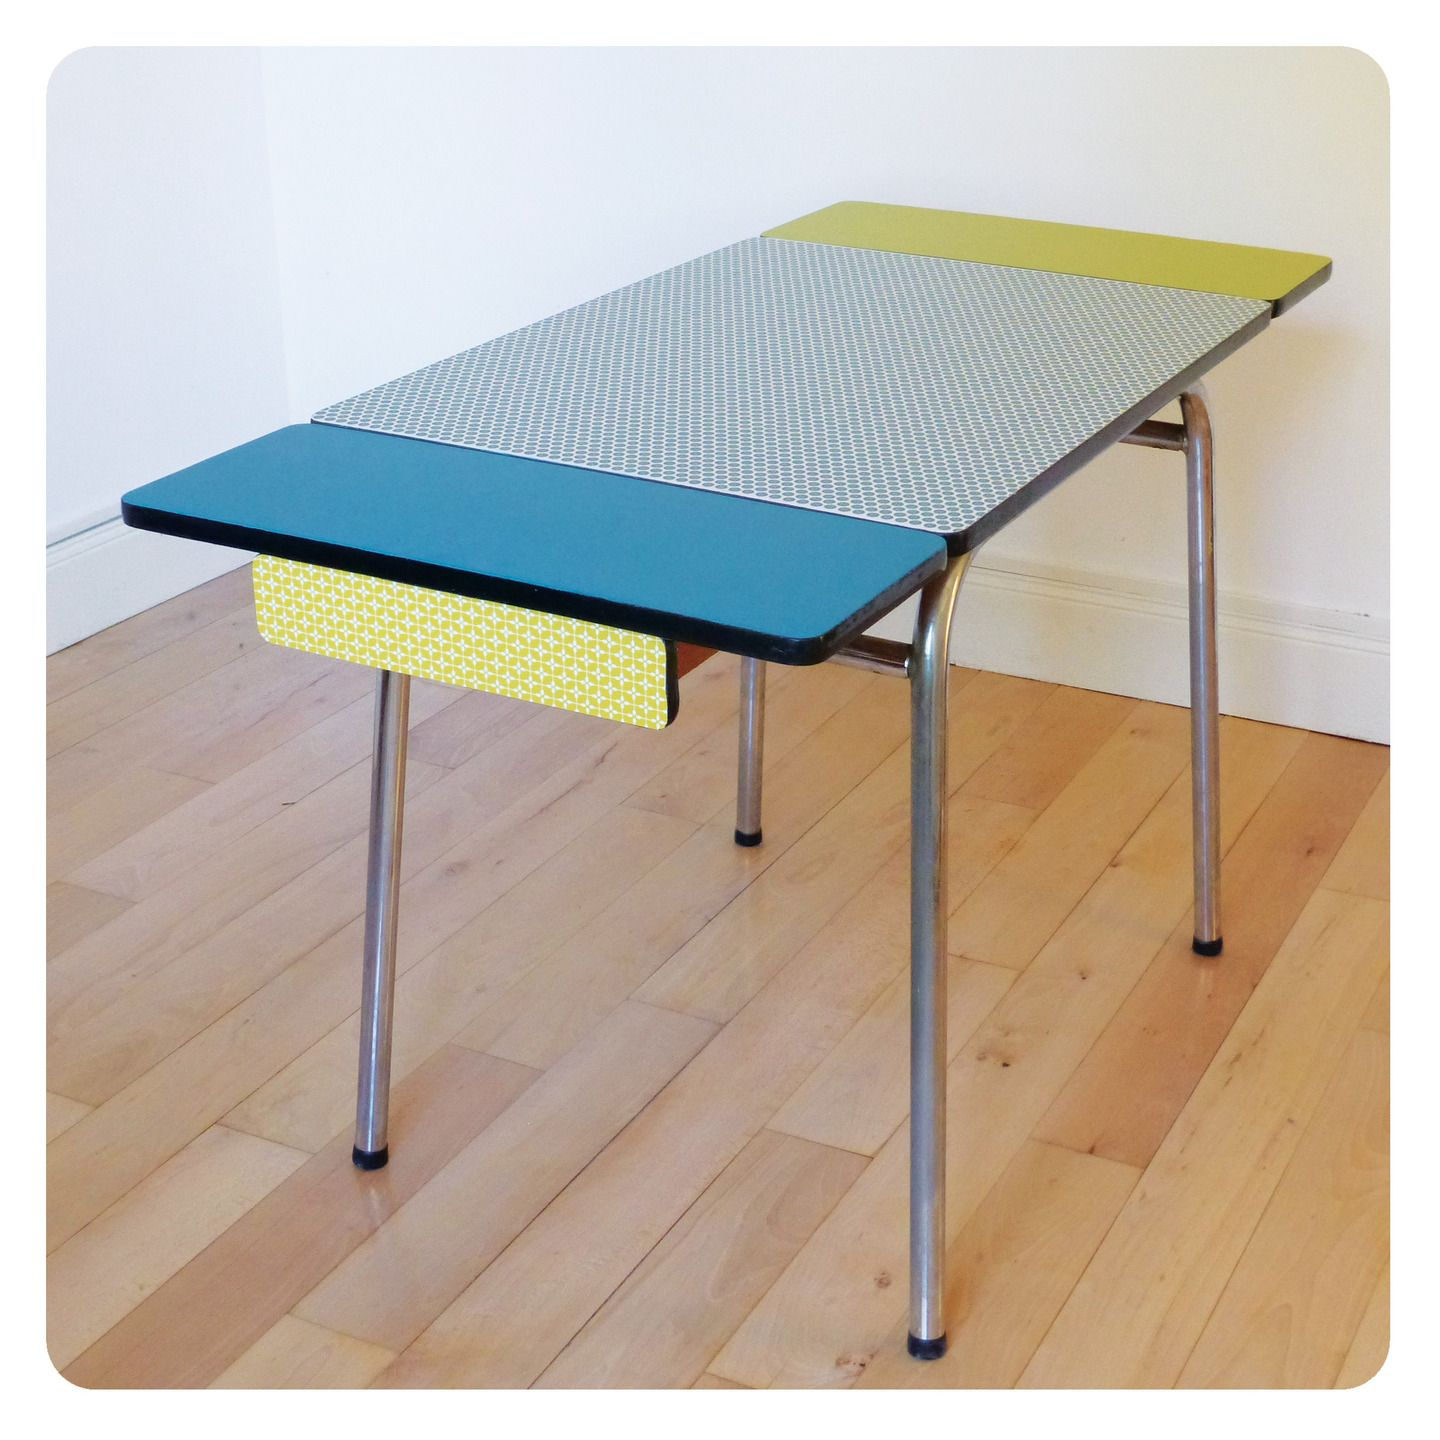 table formica mobilier vintage revisit tout en couleur